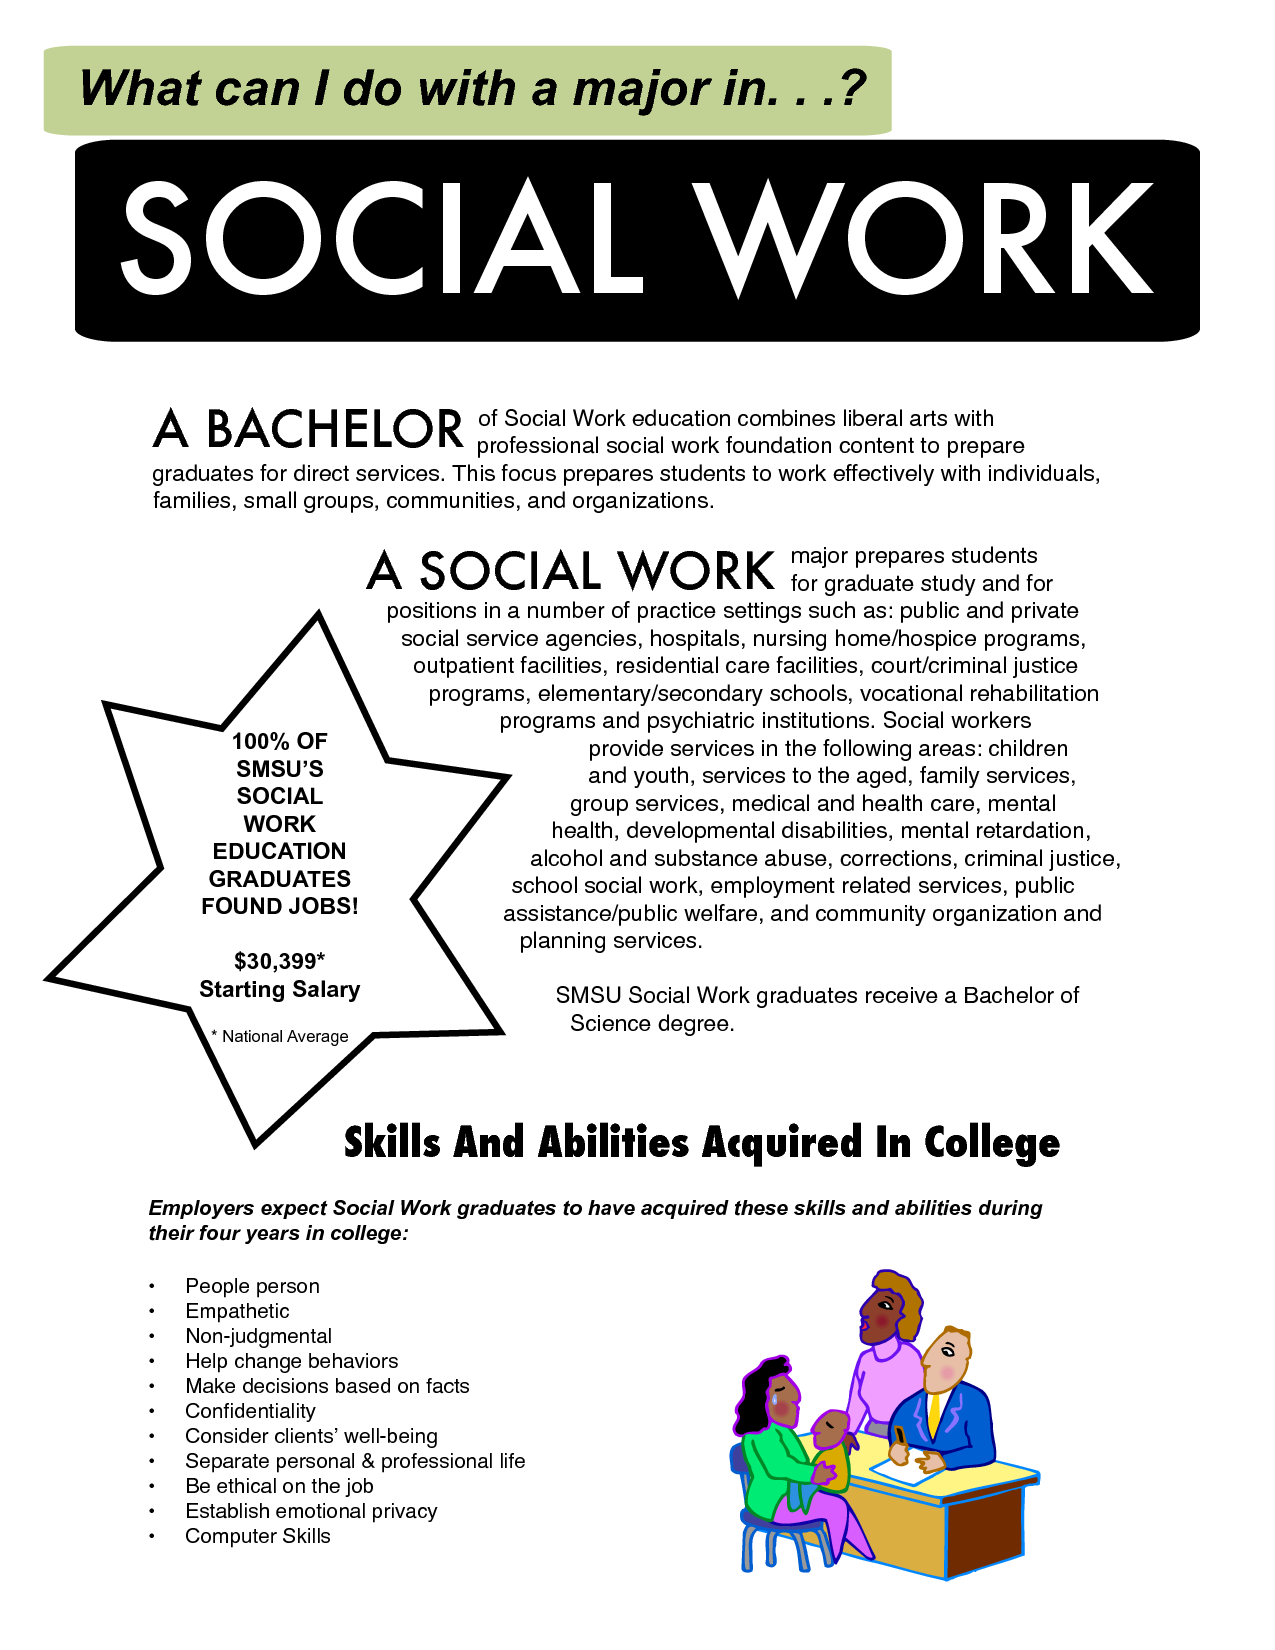 008 Essay Example Why I Want To Social Outstanding Be A Worker Study Work Do Become Became Full